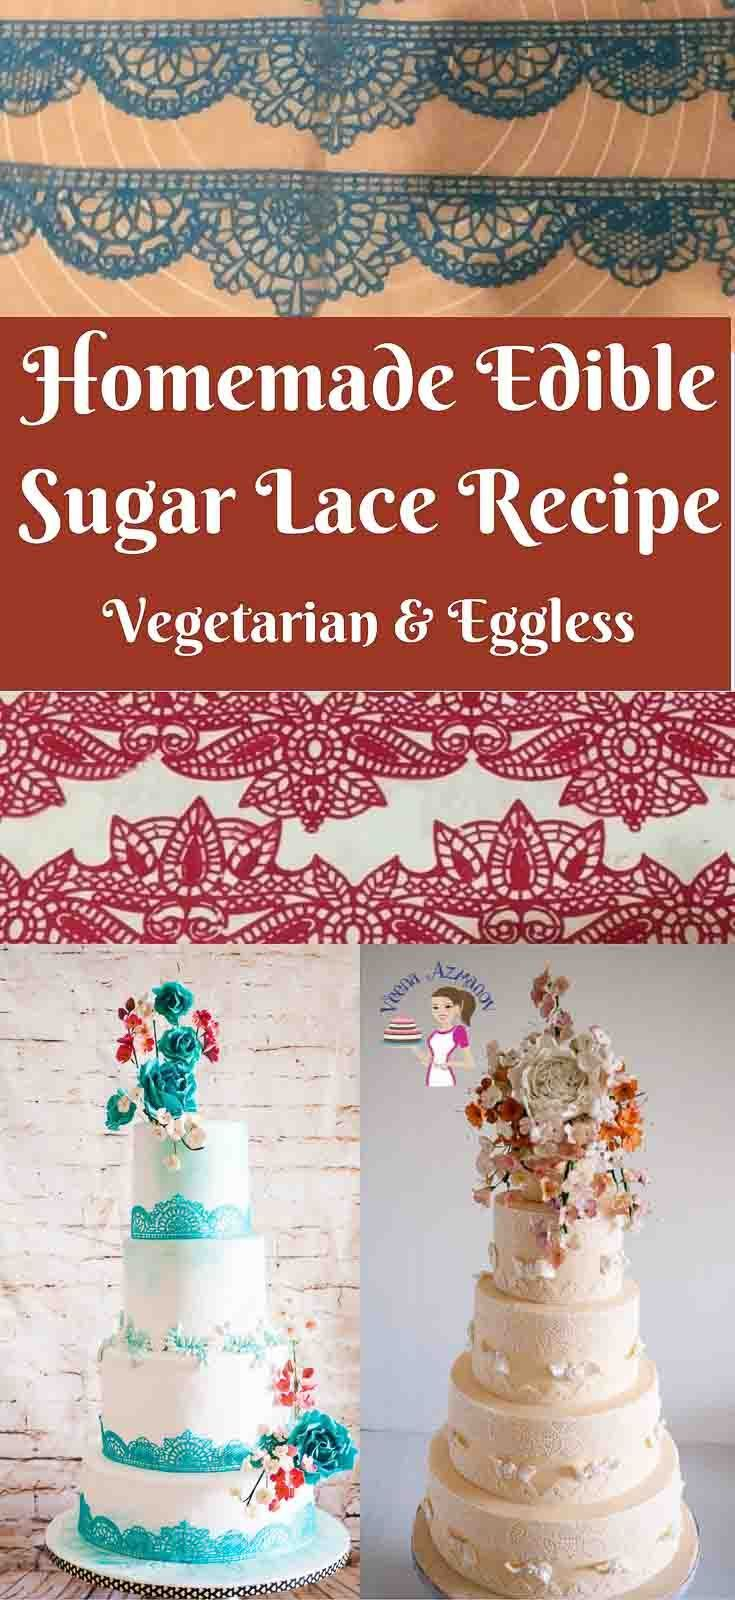 EDIBLE SUGARLACE RECIPE FROM SCRATCH - HOW TO MAKE SUGARLACE AT HOME - RECIPE Edible lace has always been the an intricate part of cake decorating but now has become a massive trend. Here's a simple homemade edible sugar lace recipe that can be applied to any cake from simple buttercream to naked ganache or a decorated fondant cake. Have fun exploring  via @Veenaazmanov #sugarlace #recipe #edible #lace #ediblelace #ediblesugarlace #recipes #howto #tutorial #recipe